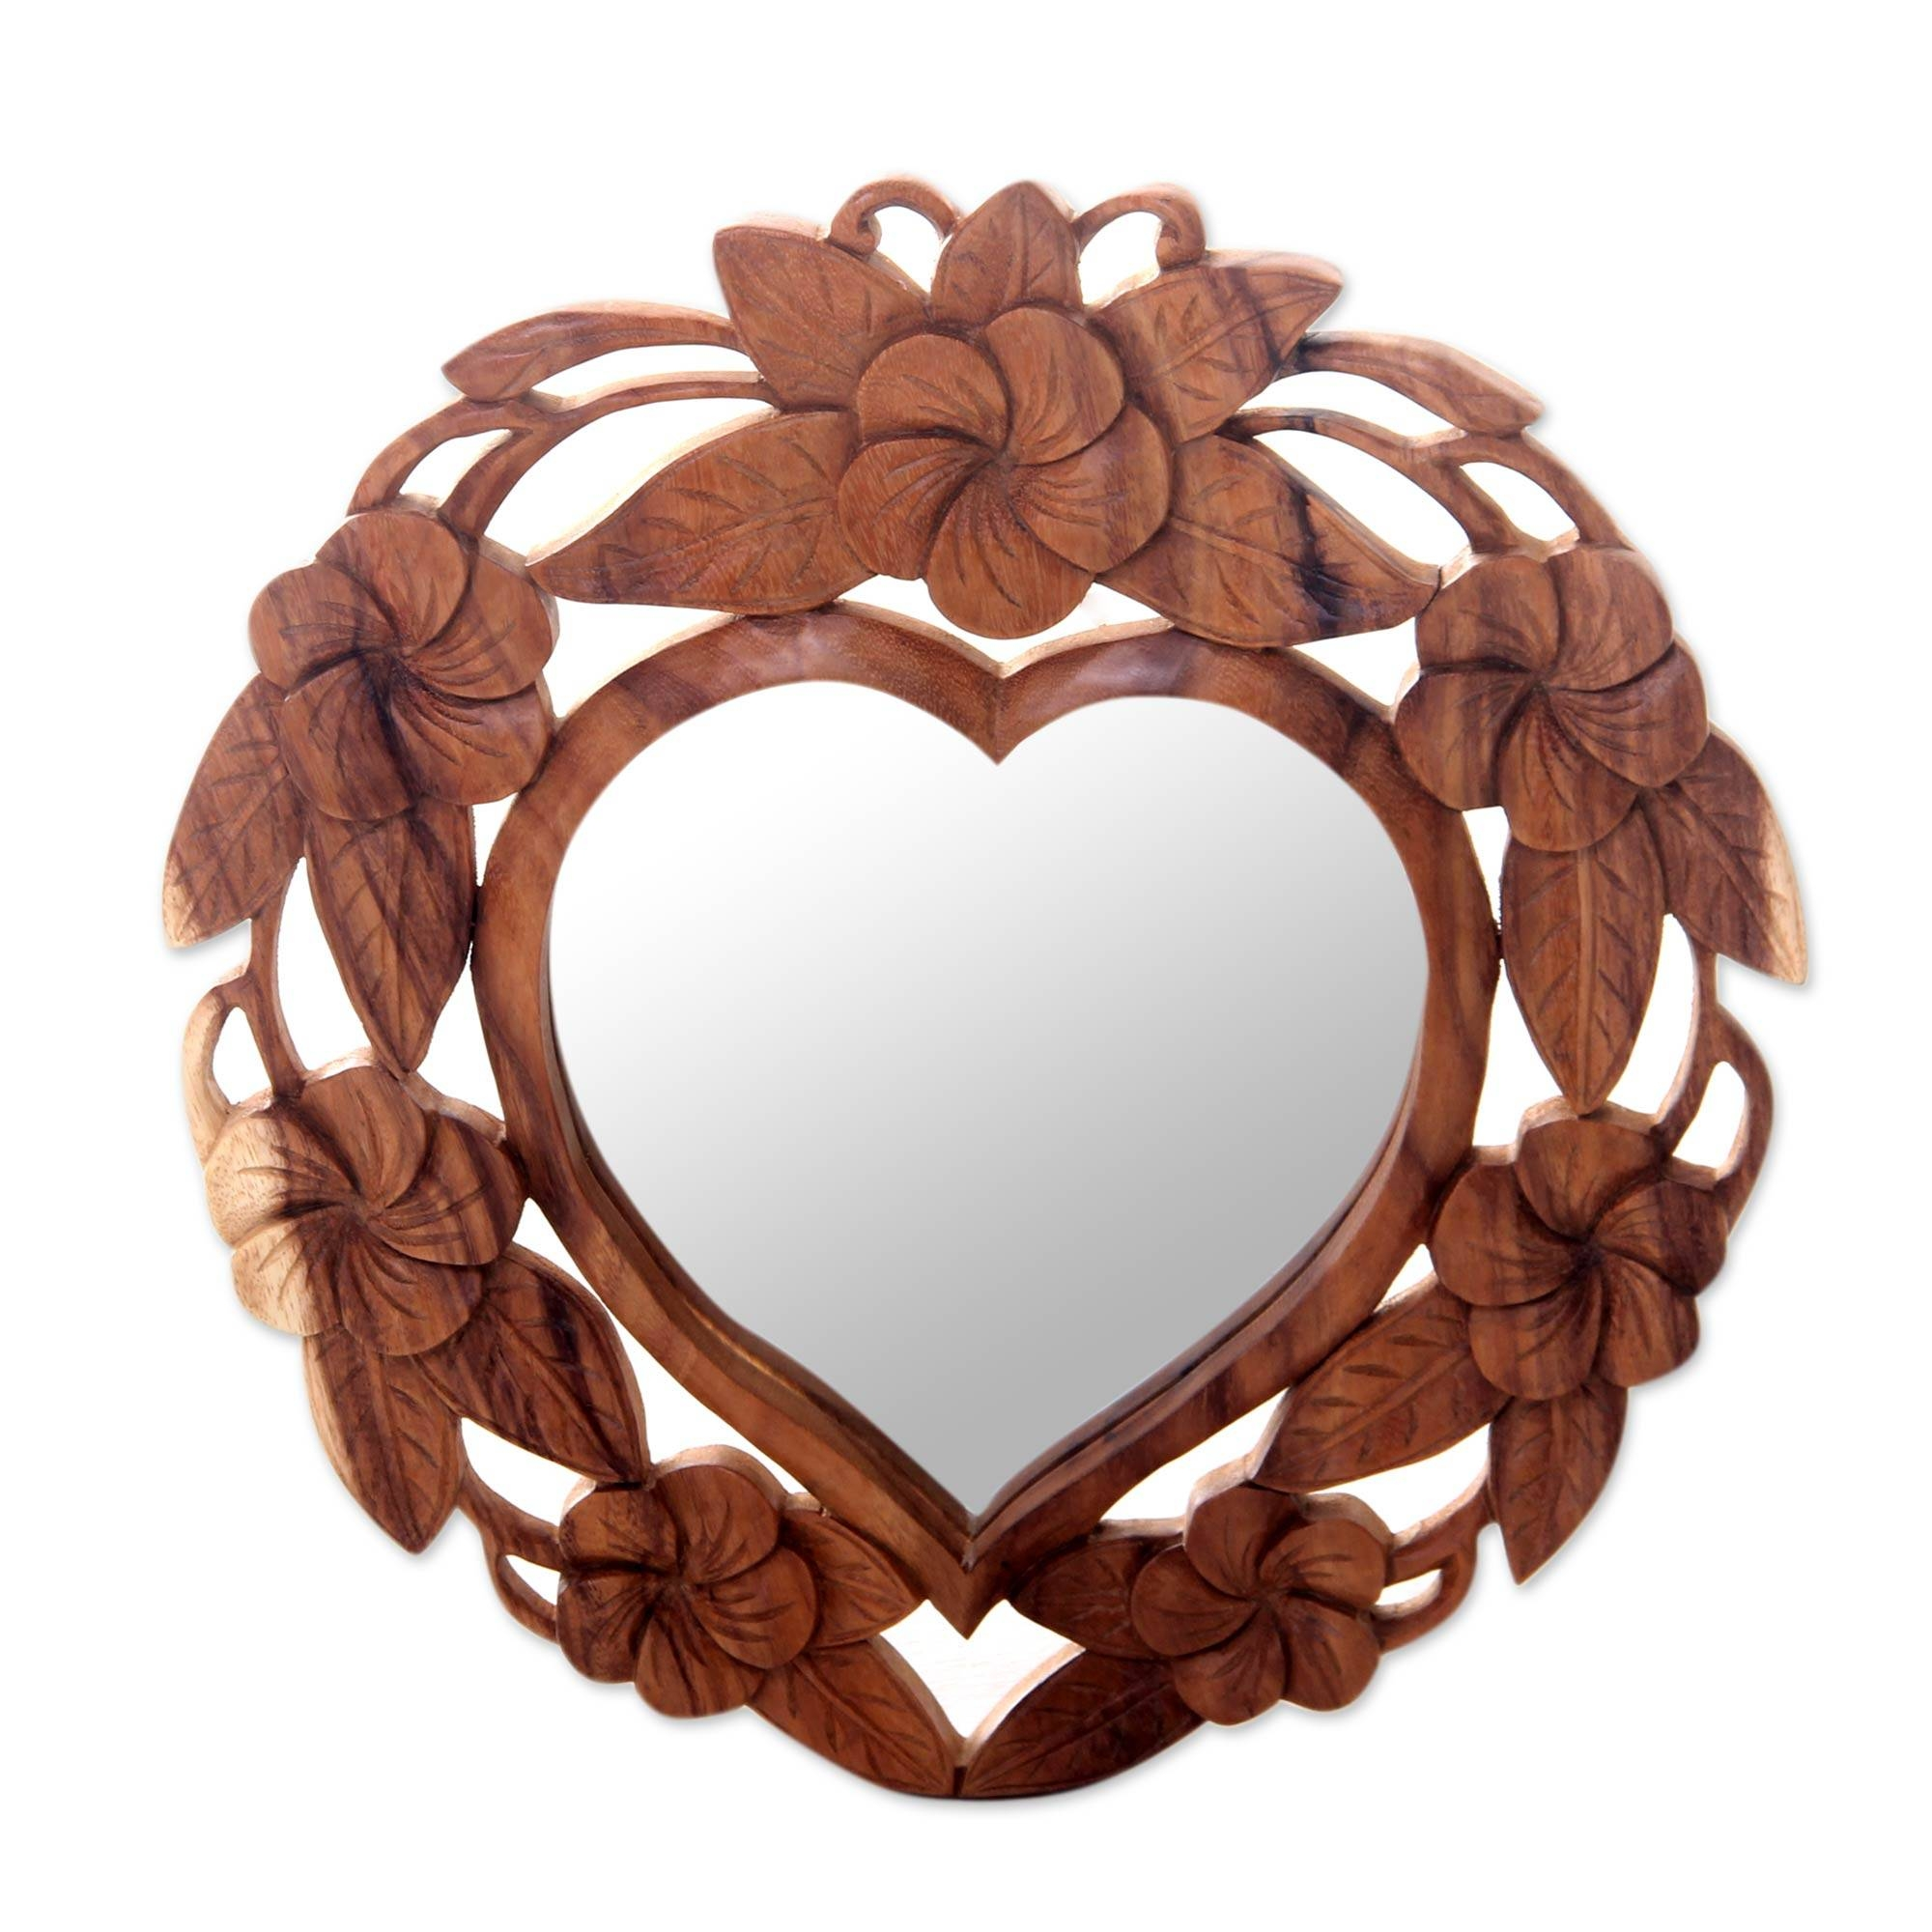 Heart-Shaped Wood Wall Mirror With Floral Motif - Frangipani Heart intended for Heart Wall Mirrors (Image 15 of 25)